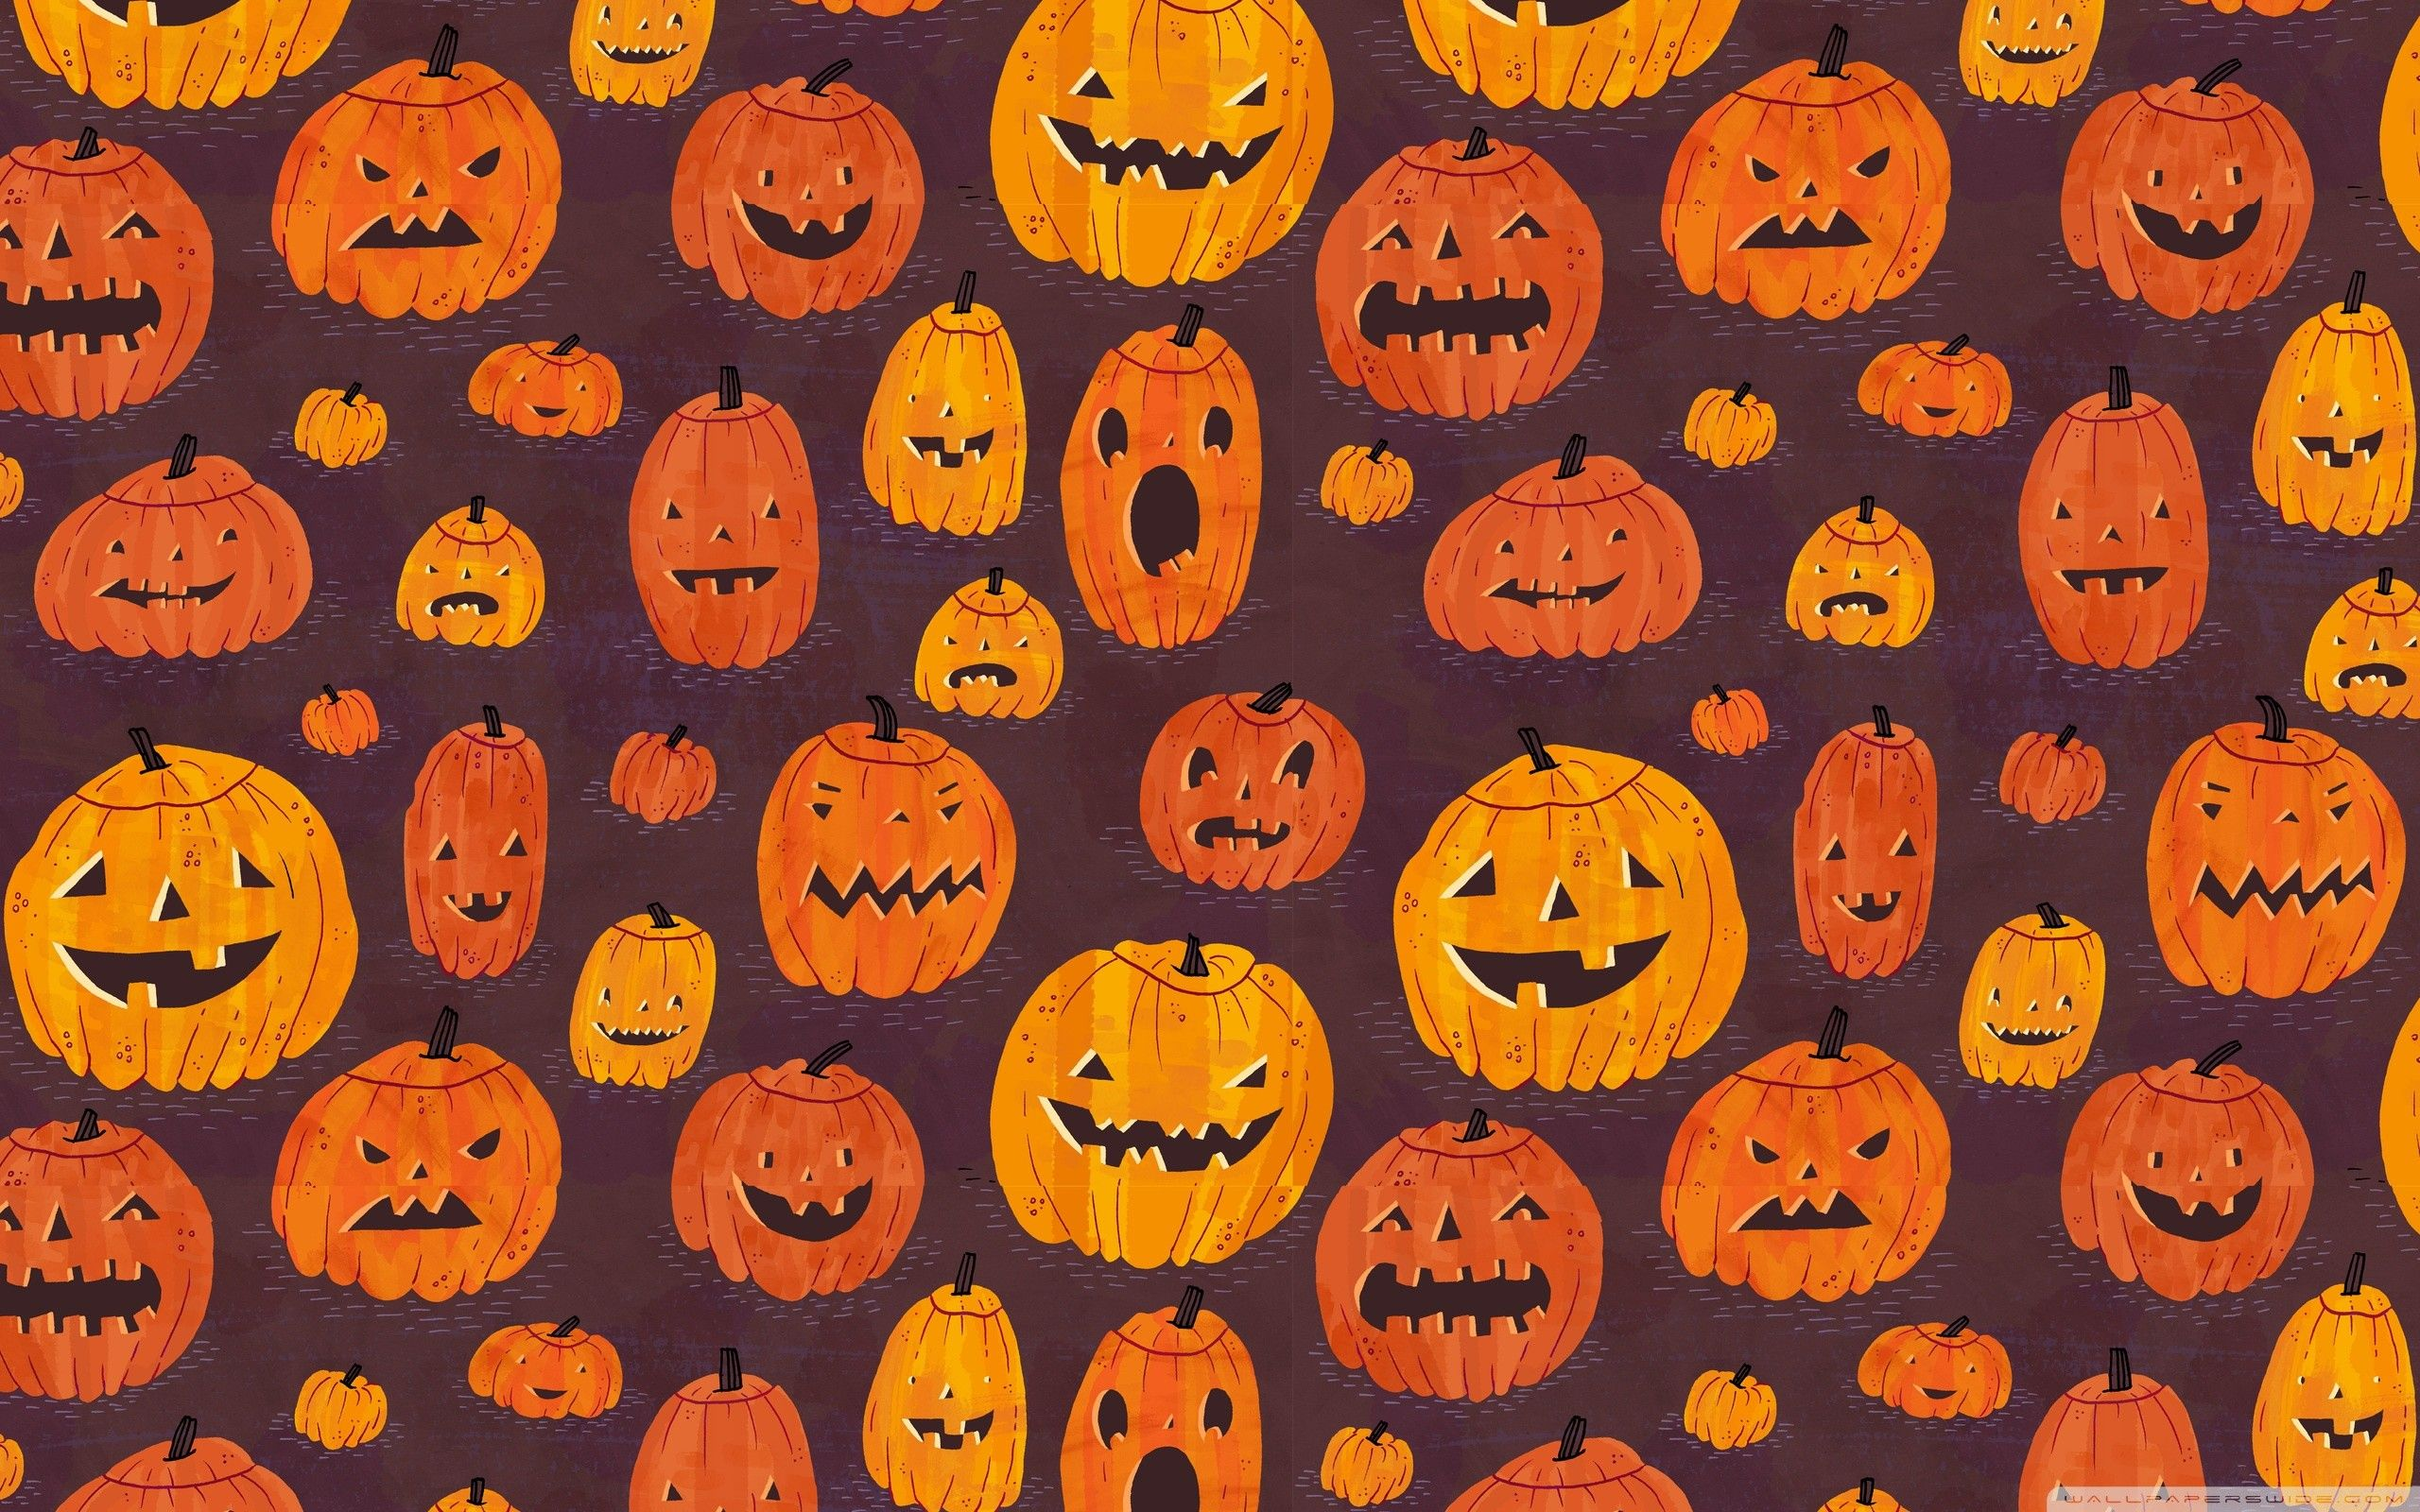 Halloween Backgrounds For Desktop In 2020 Halloween Desktop Wallpaper Pumpkin Wallpaper Halloween Wallpaper Iphone